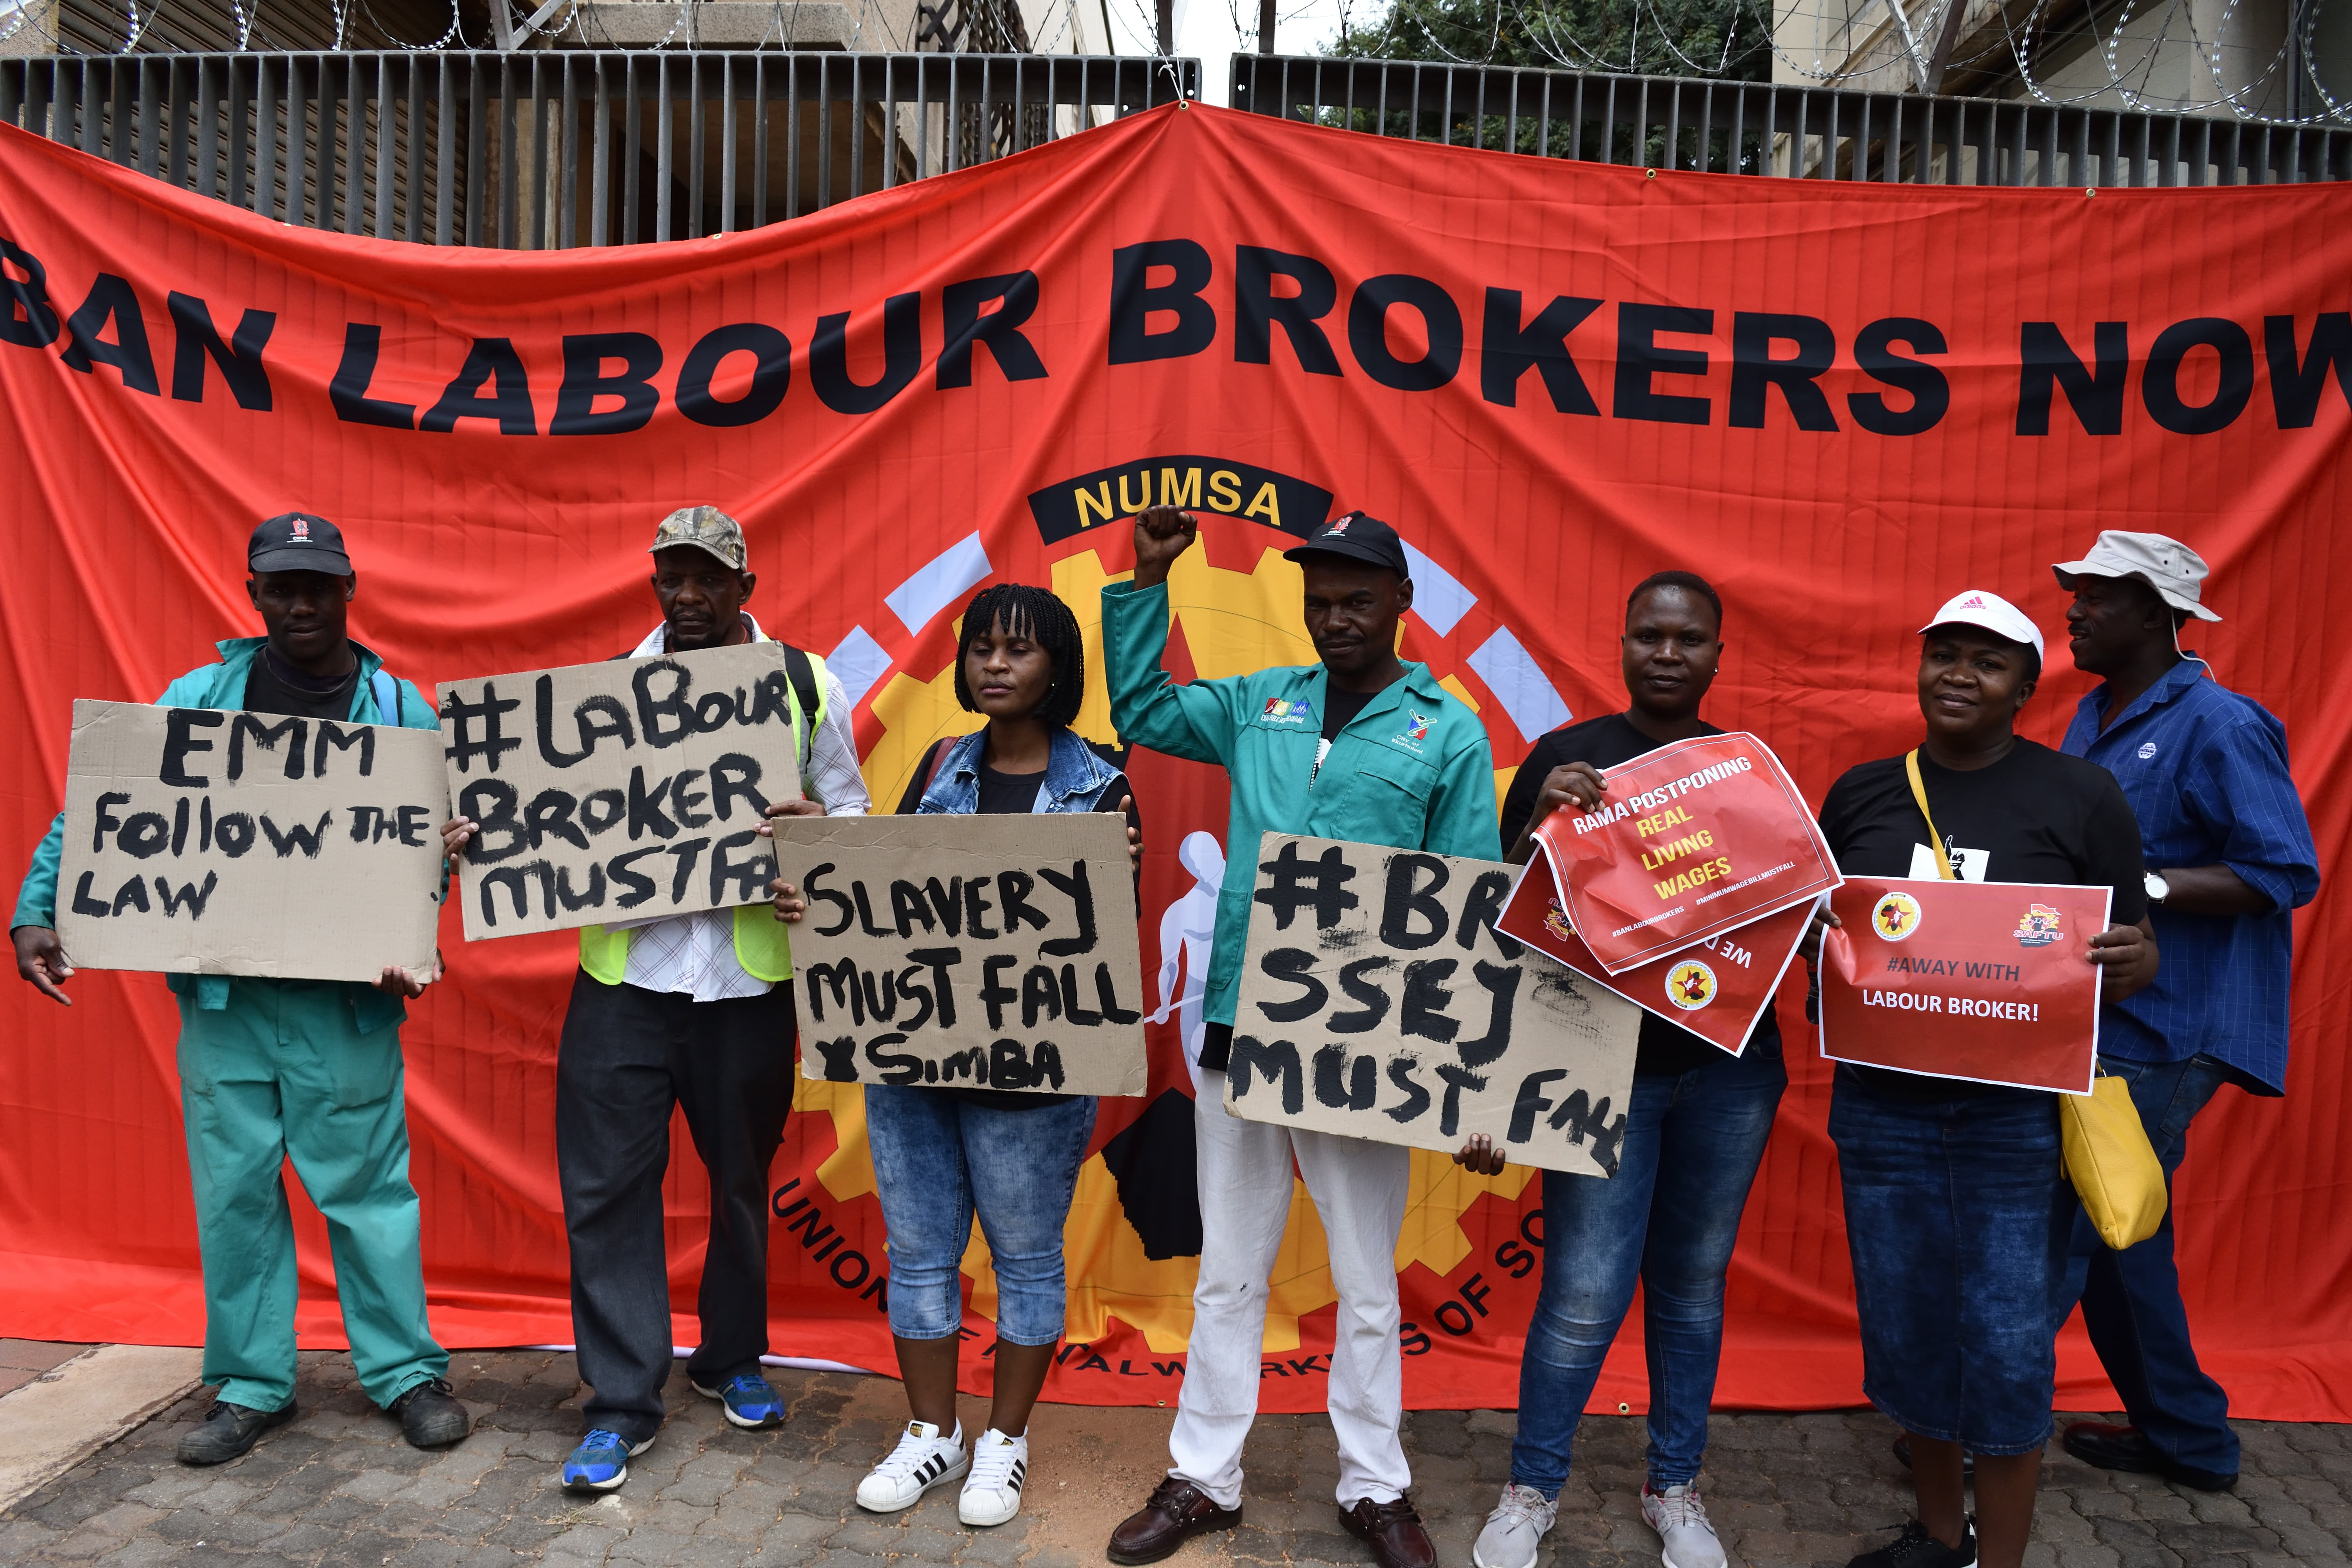 South Africa: Metalworkers' fight against precarious work goes to the Constitutional Court